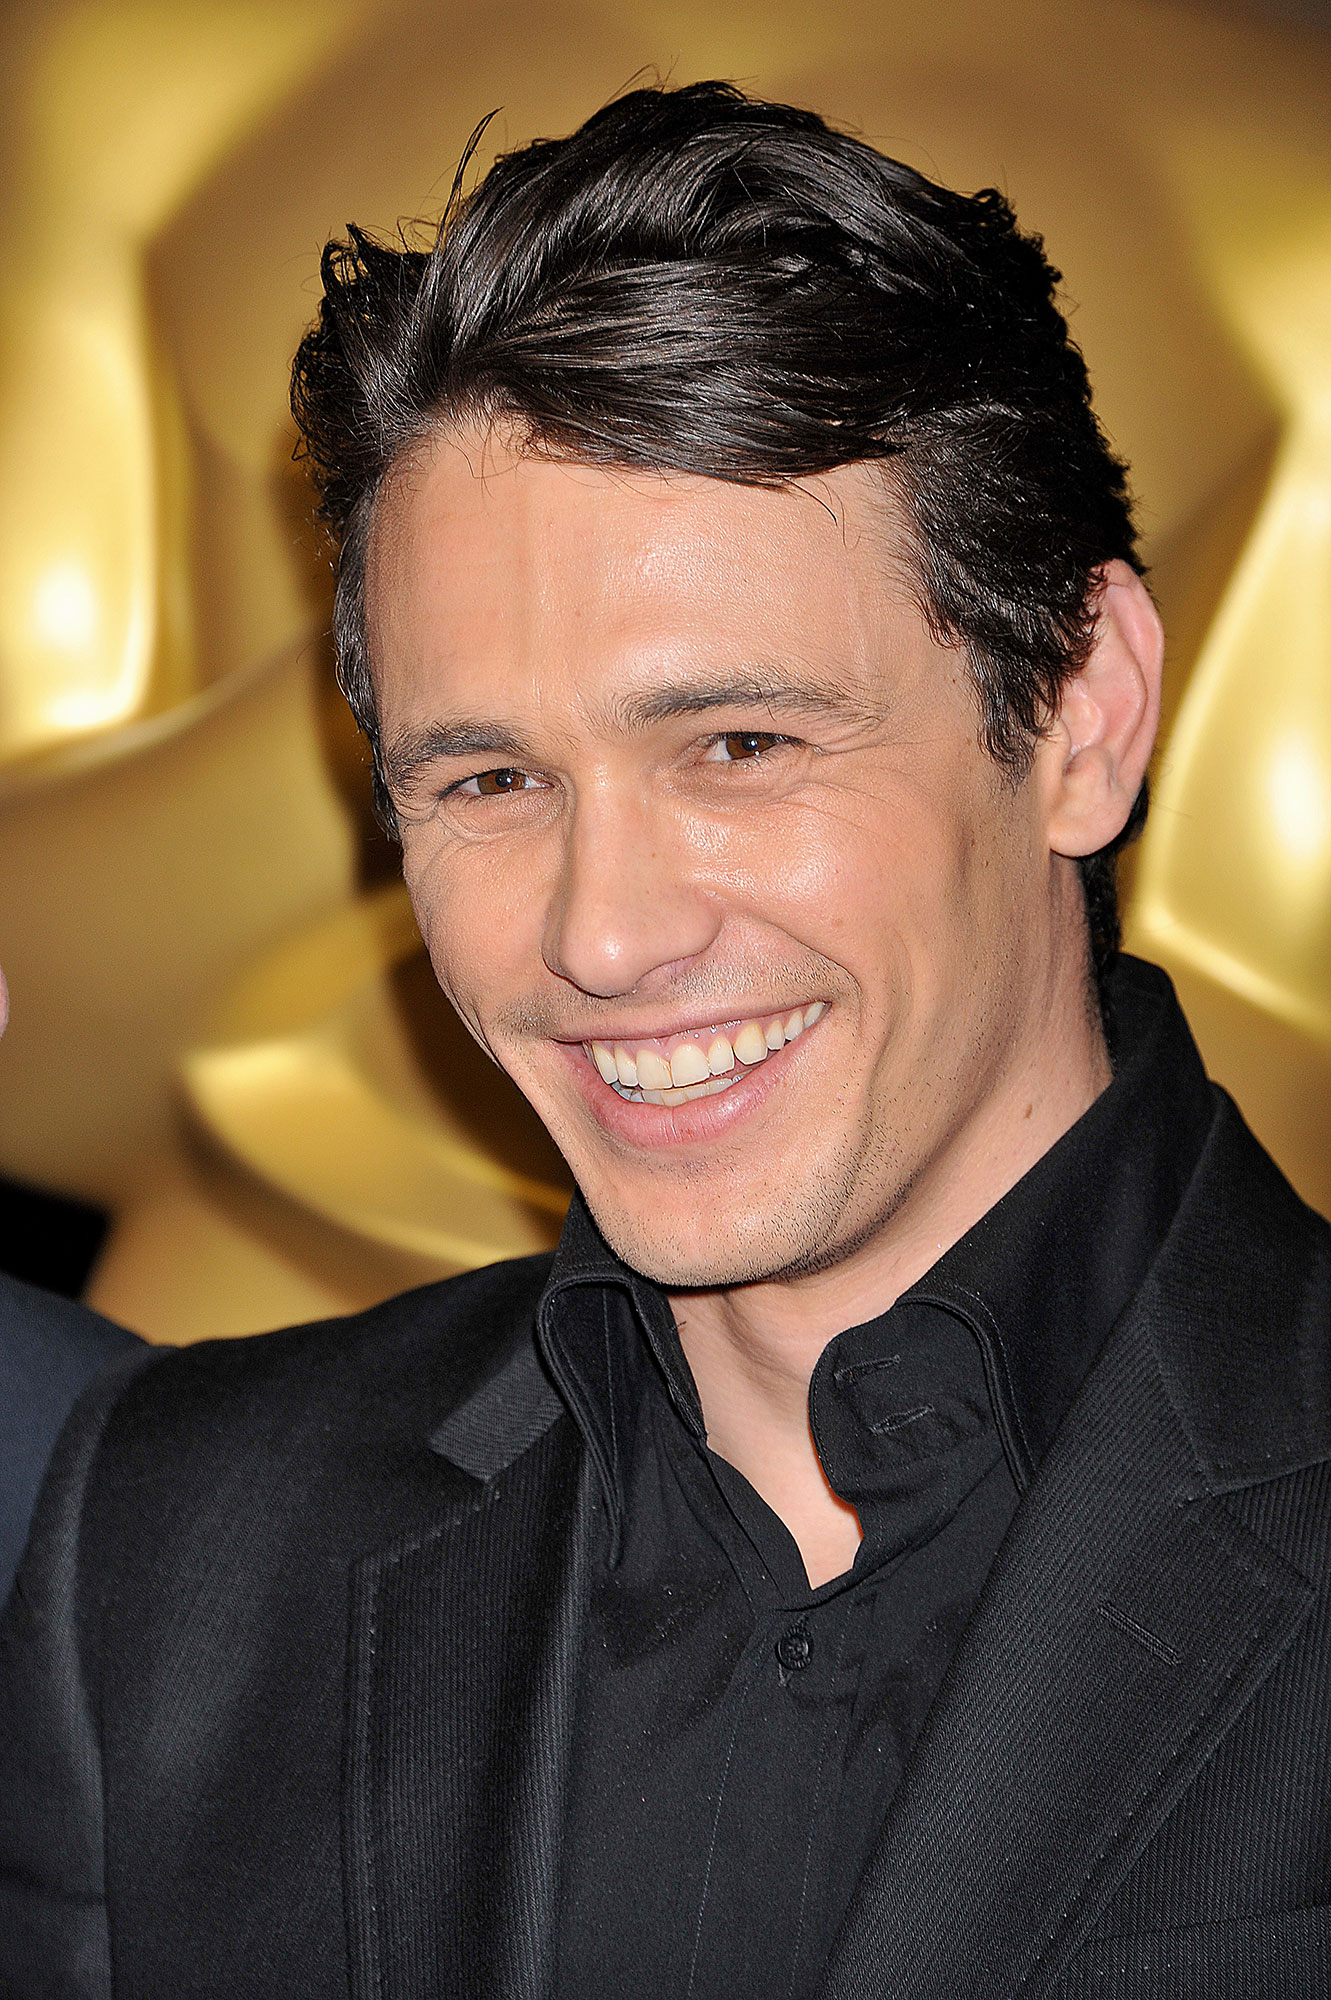 James Franco - Stars Who Have Never Won Oscars - Franco has been notoriously snubbed the Academy over the years, receiving just one nomination for Best Performance by an Actor in a Leading Role in 2011 for 127 Hours .